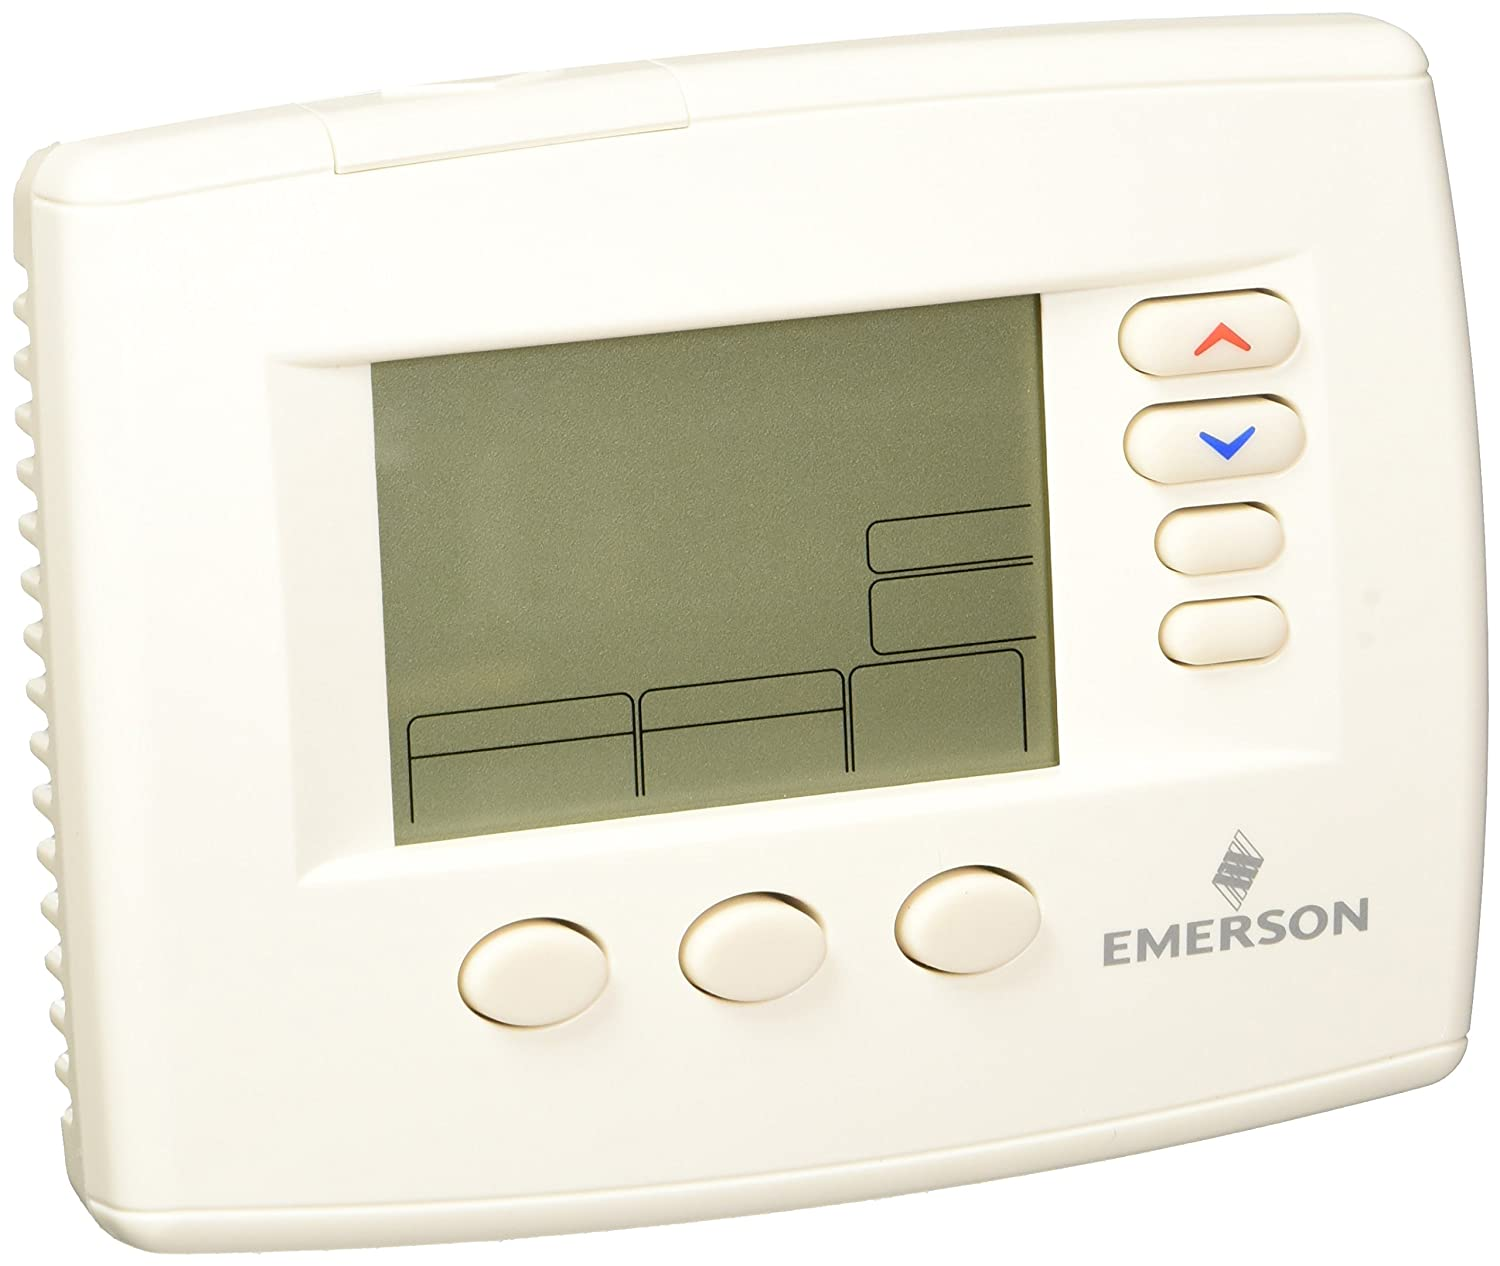 81jaNpI0b5L._SL1500_ emerson 1f85 0422 2 heat and cool stages programmable thermostat wiring diagram for a emerson up310 thermostat at reclaimingppi.co